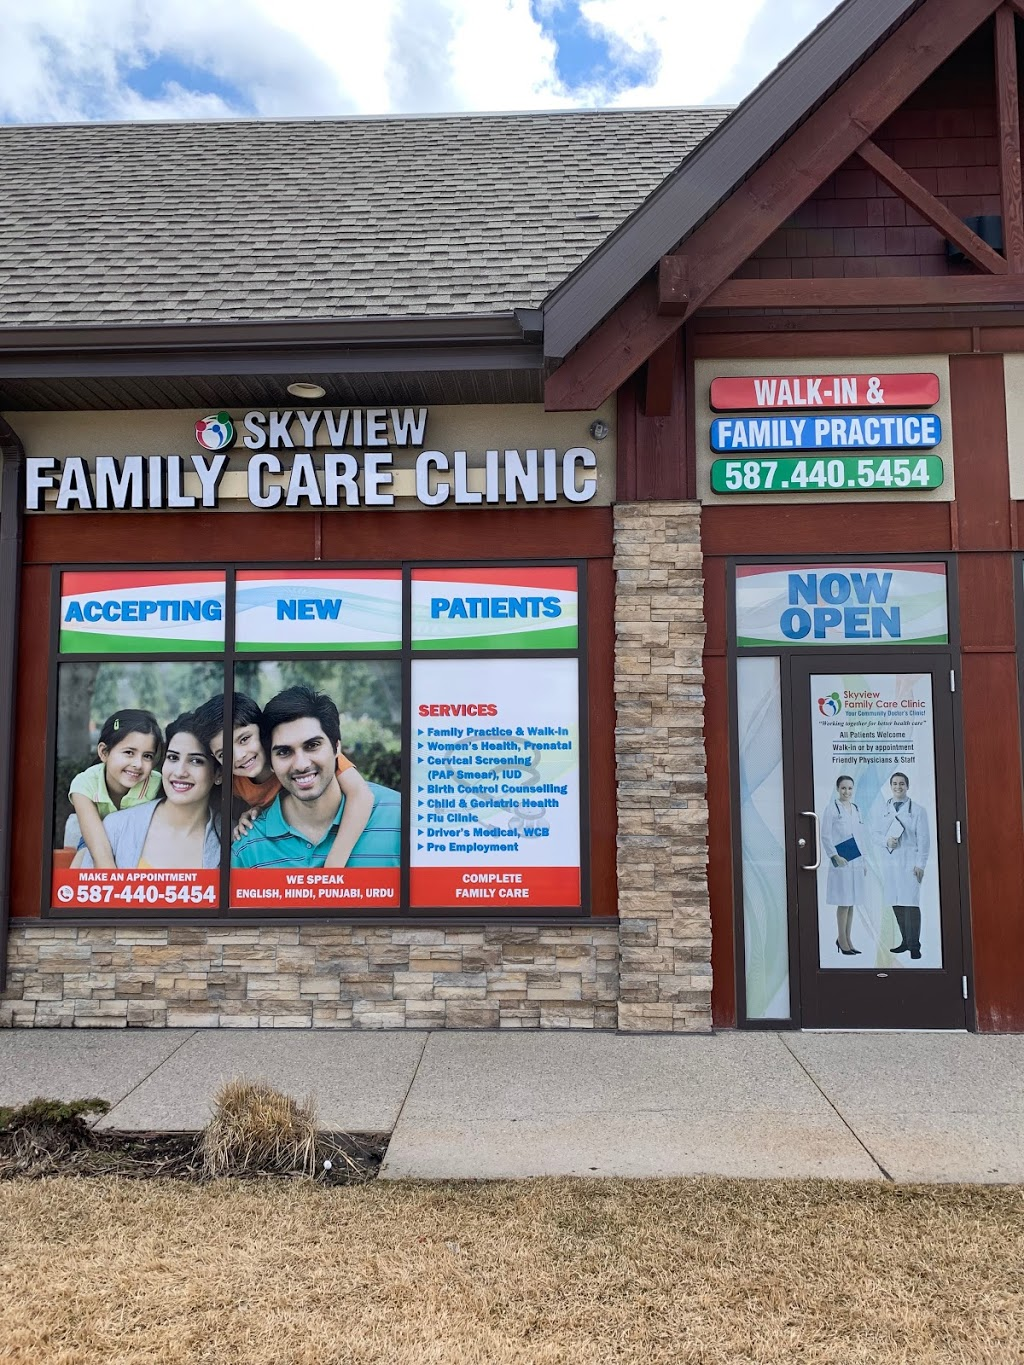 Skyview Family Care Clinic | health | 55 Skyview Ranch Rd #2108, Calgary, AB T3N 0E4, Canada | 5874405454 OR +1 587-440-5454